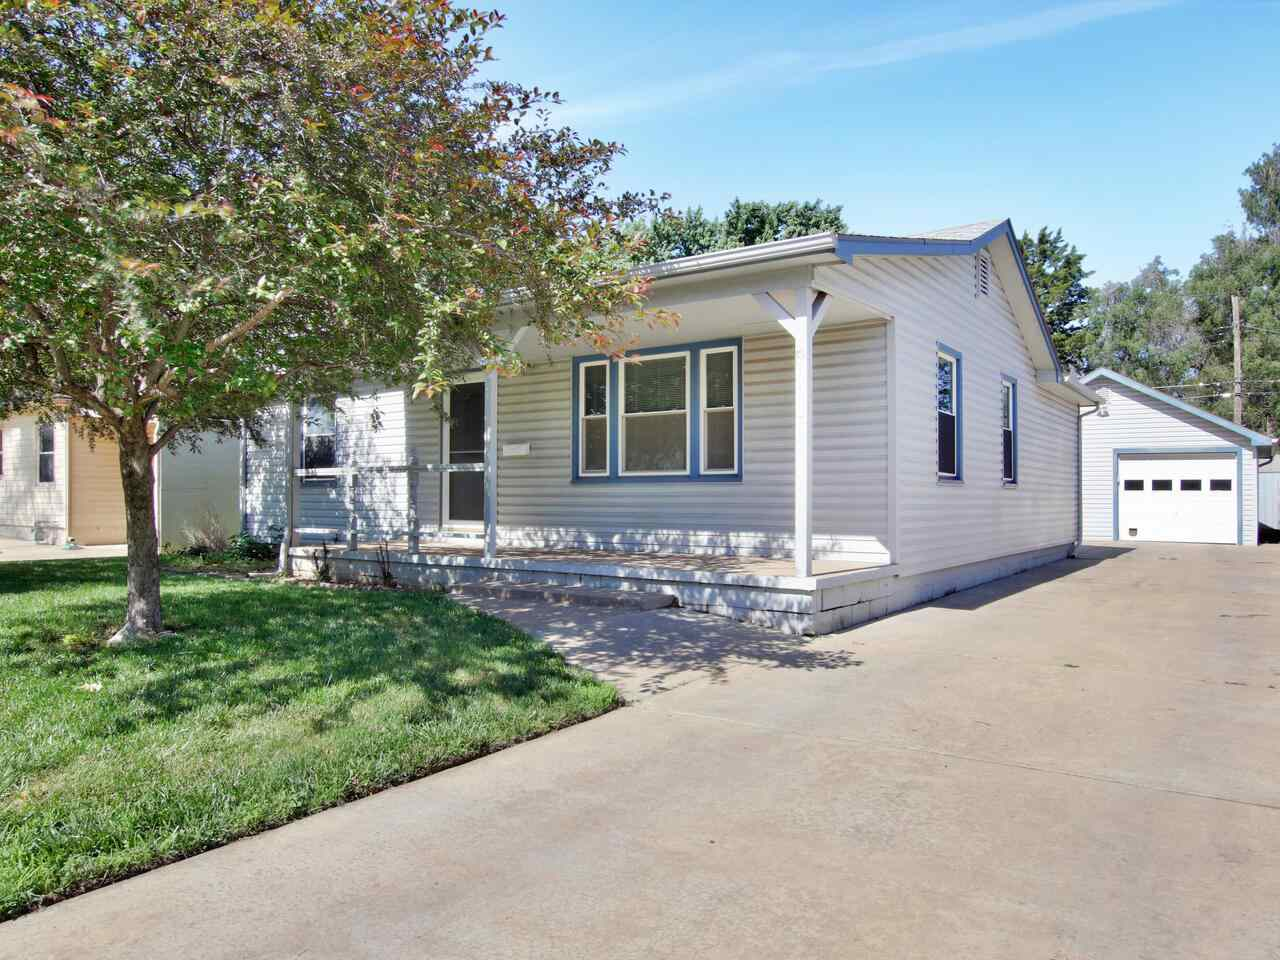 This charming move-in ready 2-bed, 1-bath home is the perfect opportunity for a first-time home buye